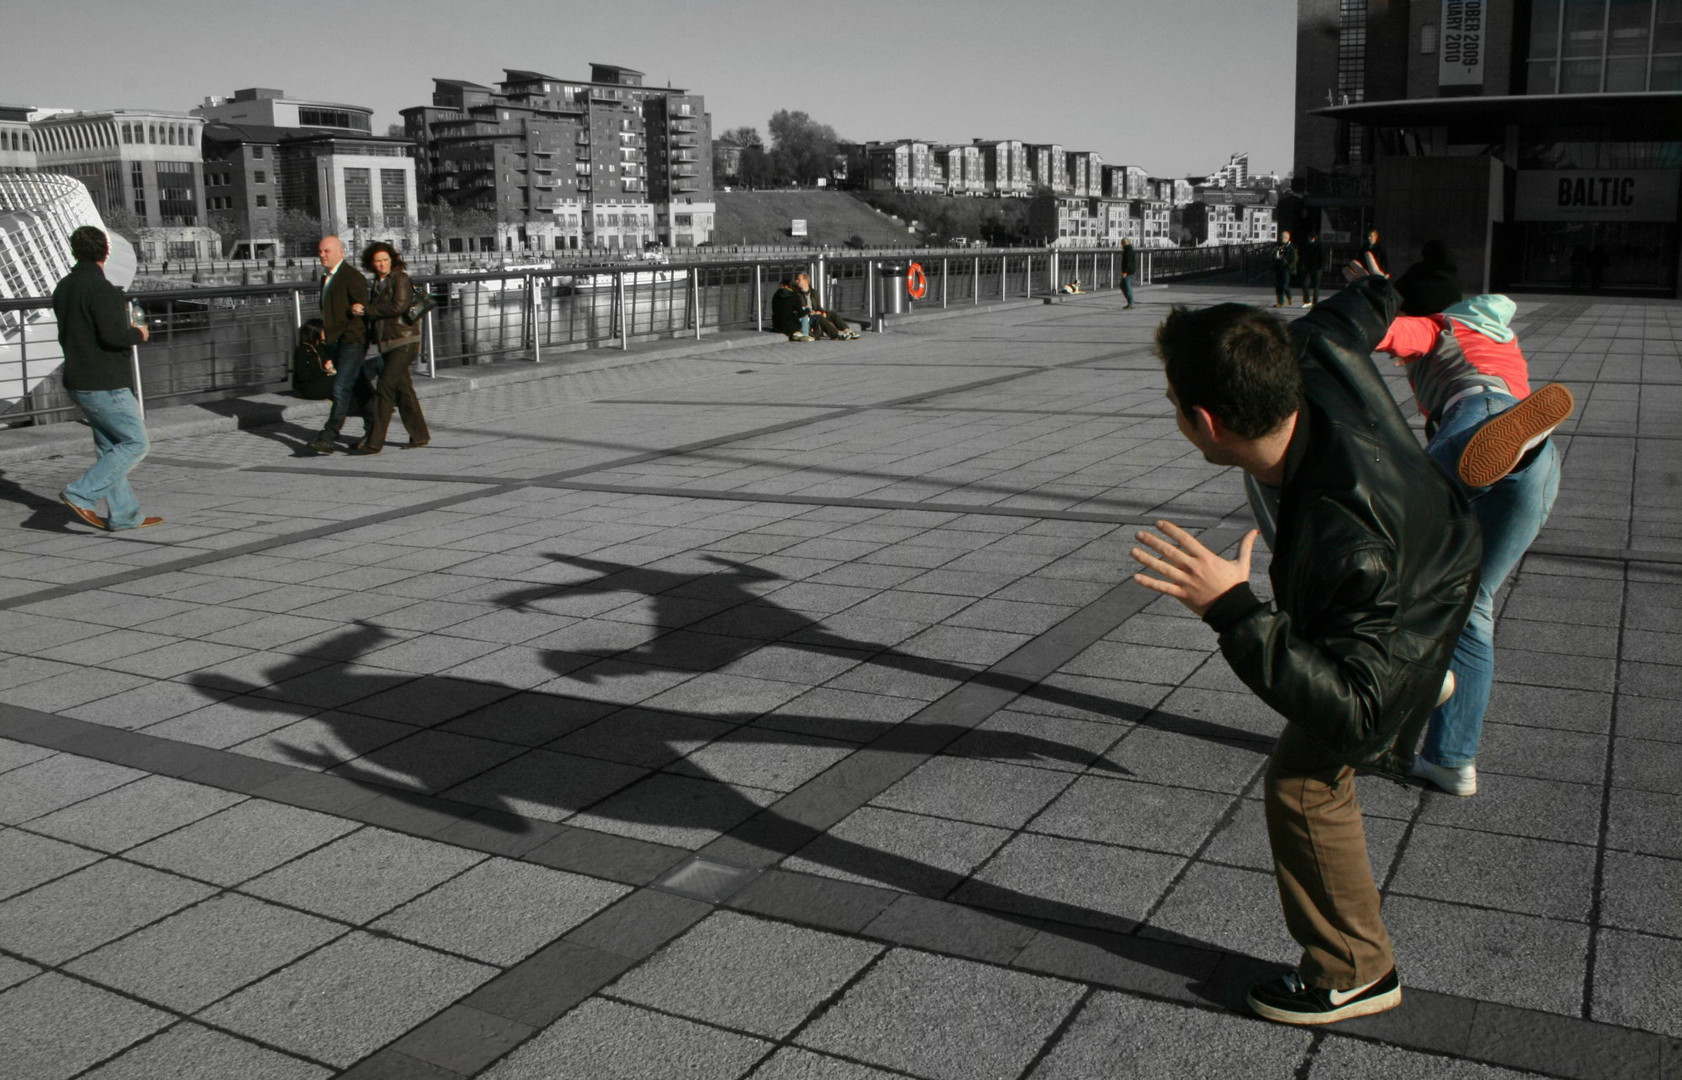 Shadow games in Newcastle upon Tyne